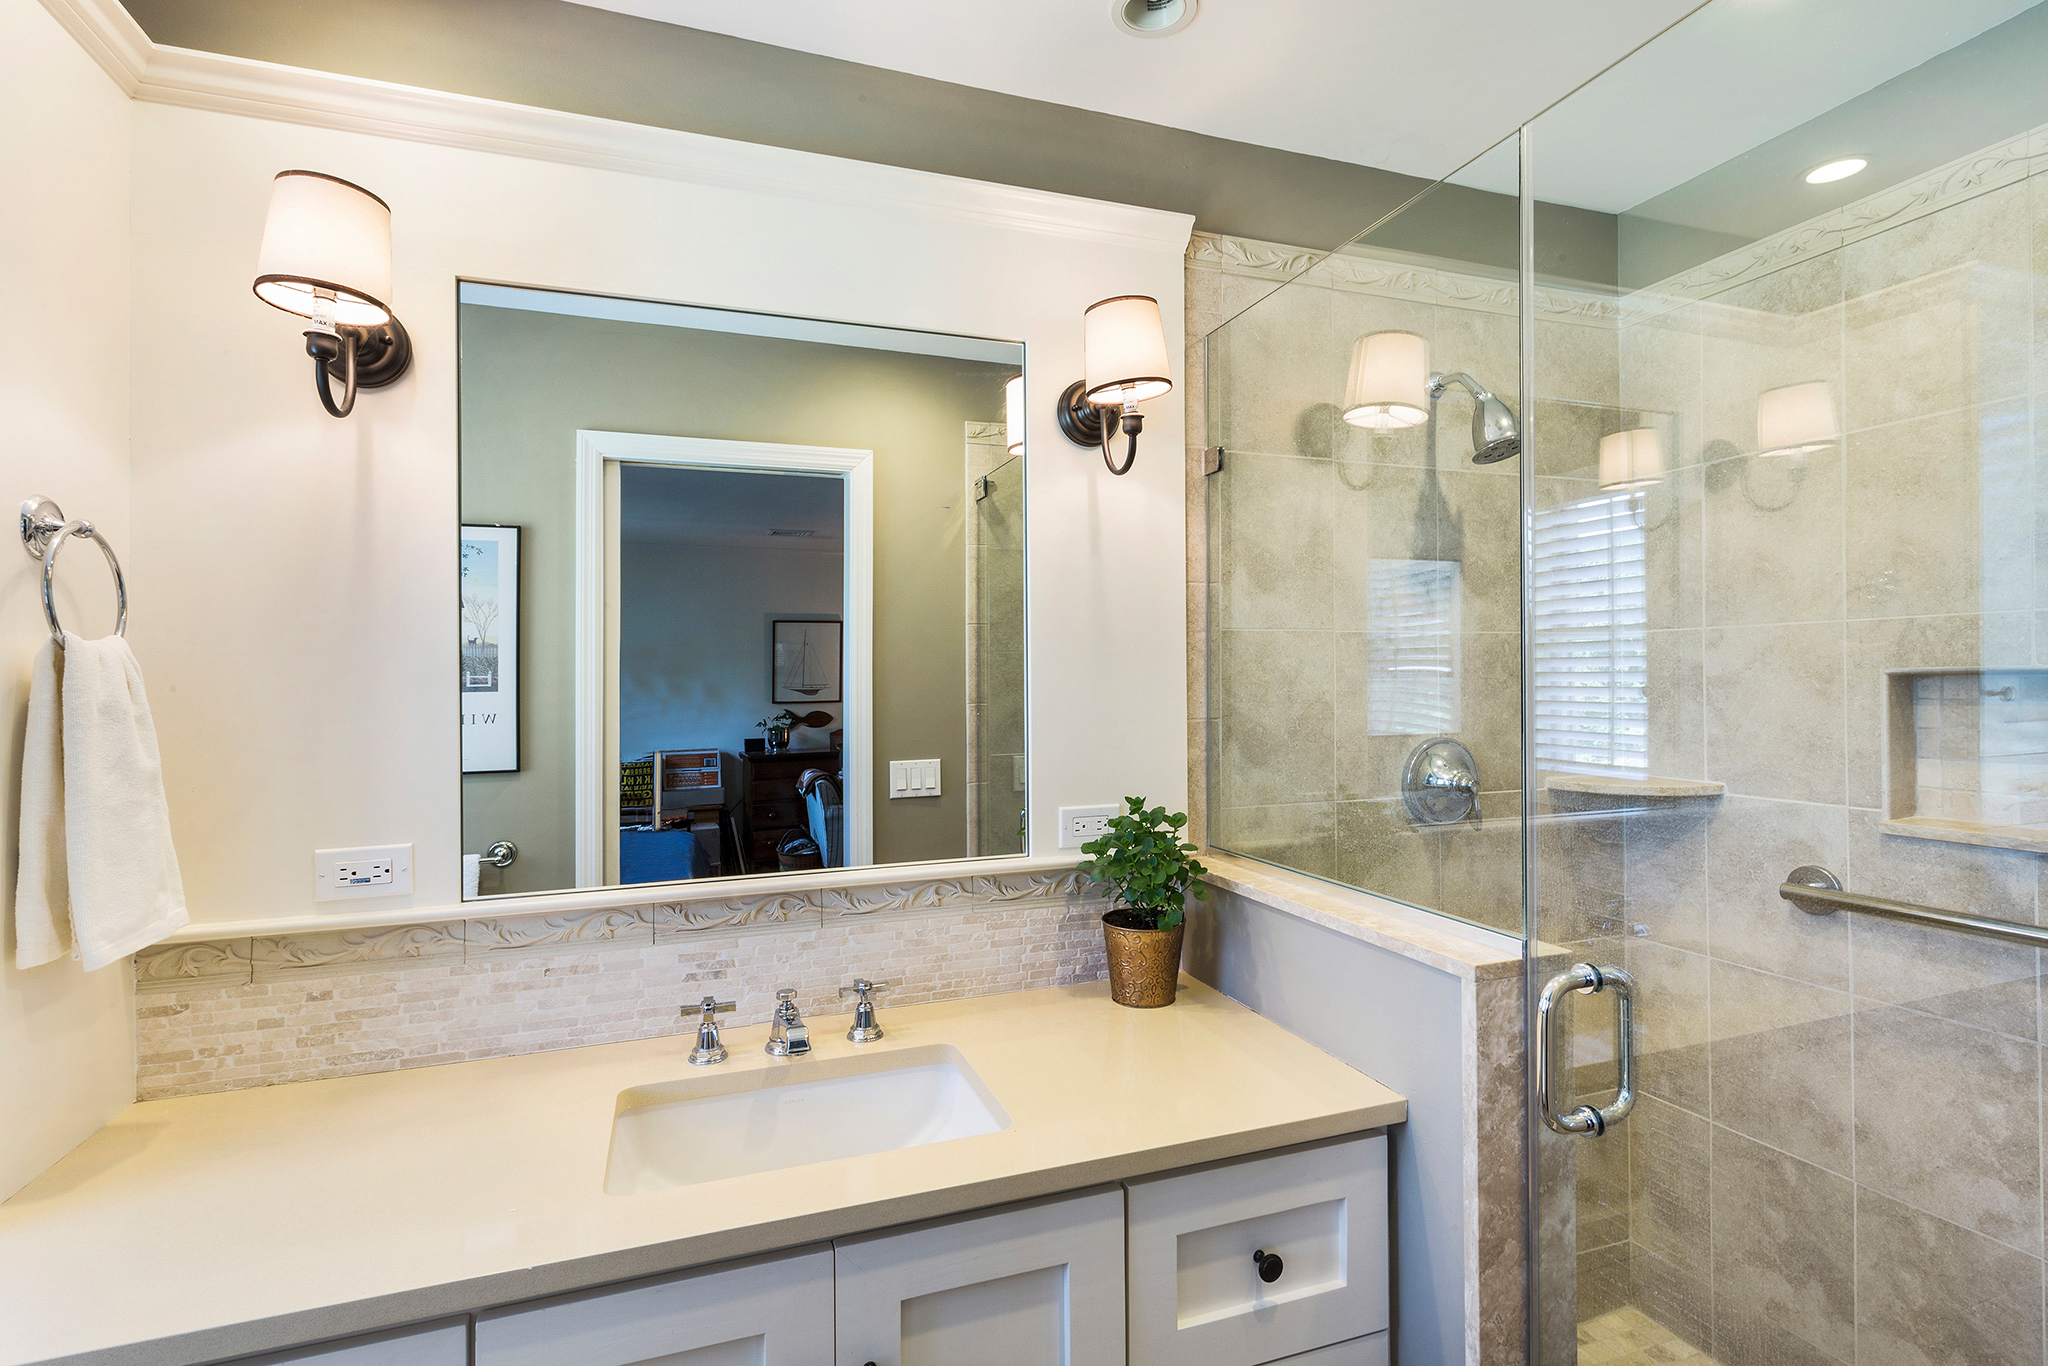 11 7 Scarlet Oak Road Tewksury Township — BR 3 Bathroom